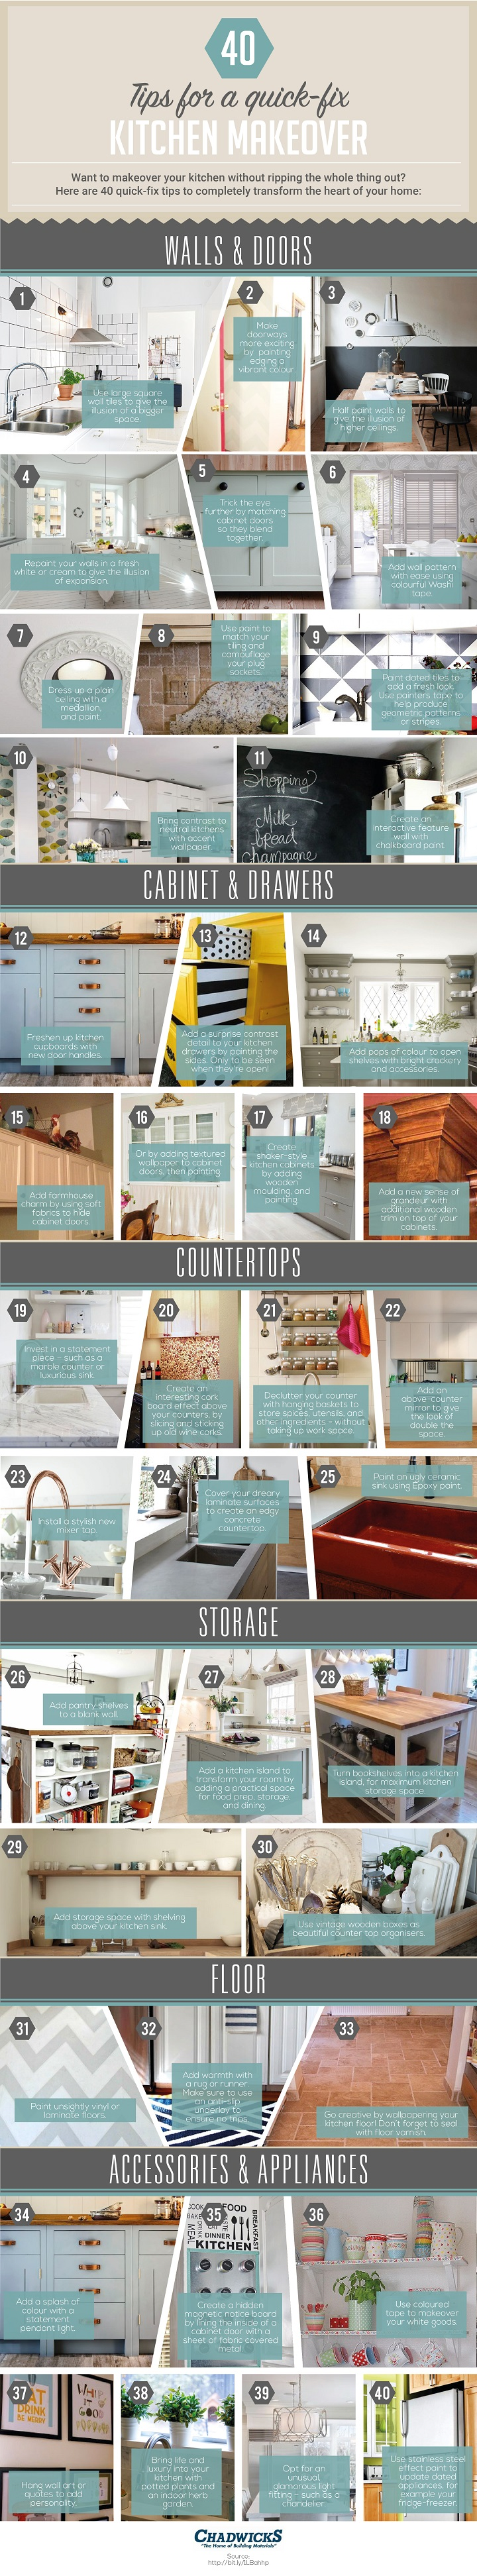 Spice and Spruce Up Your Kitchen: 40 Amazing and Quick Makeover Tips - Infographic